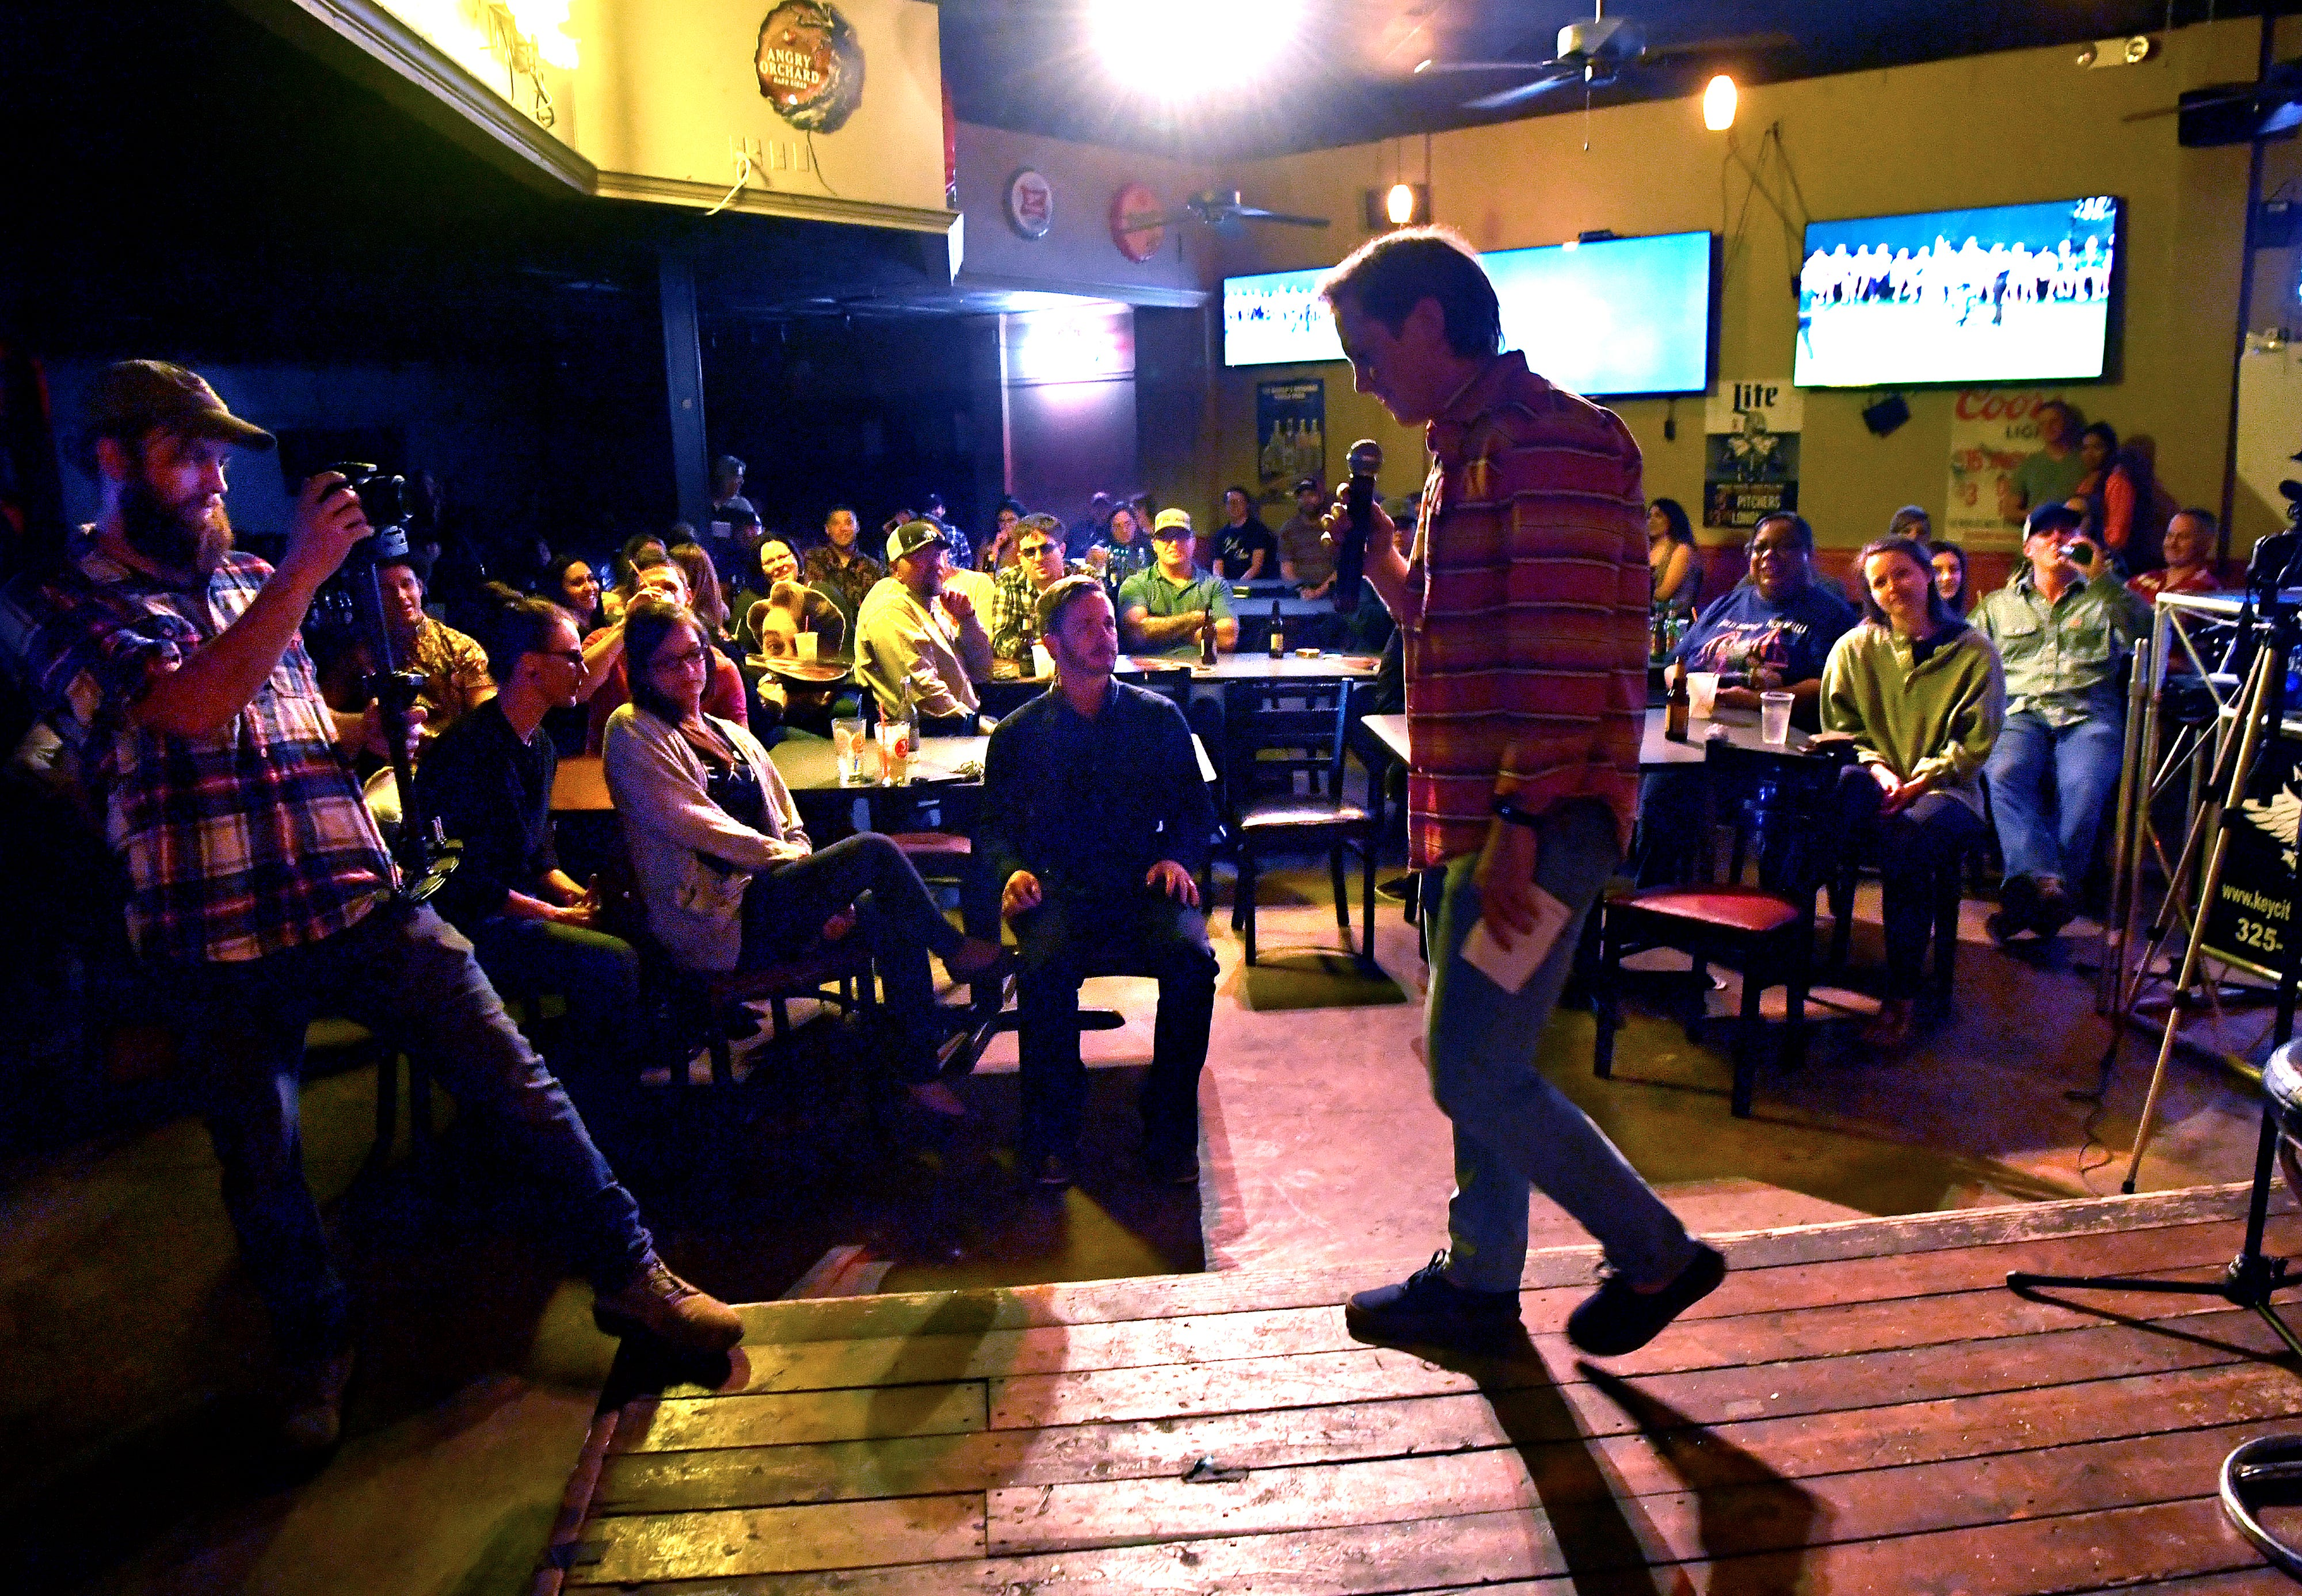 Shelton Holmes performs a set at The Zone Bar & Grill during Open Mic Comedy Night. The amateur stand-up was open to all-comers. The next event is 9 p.m. May 24.